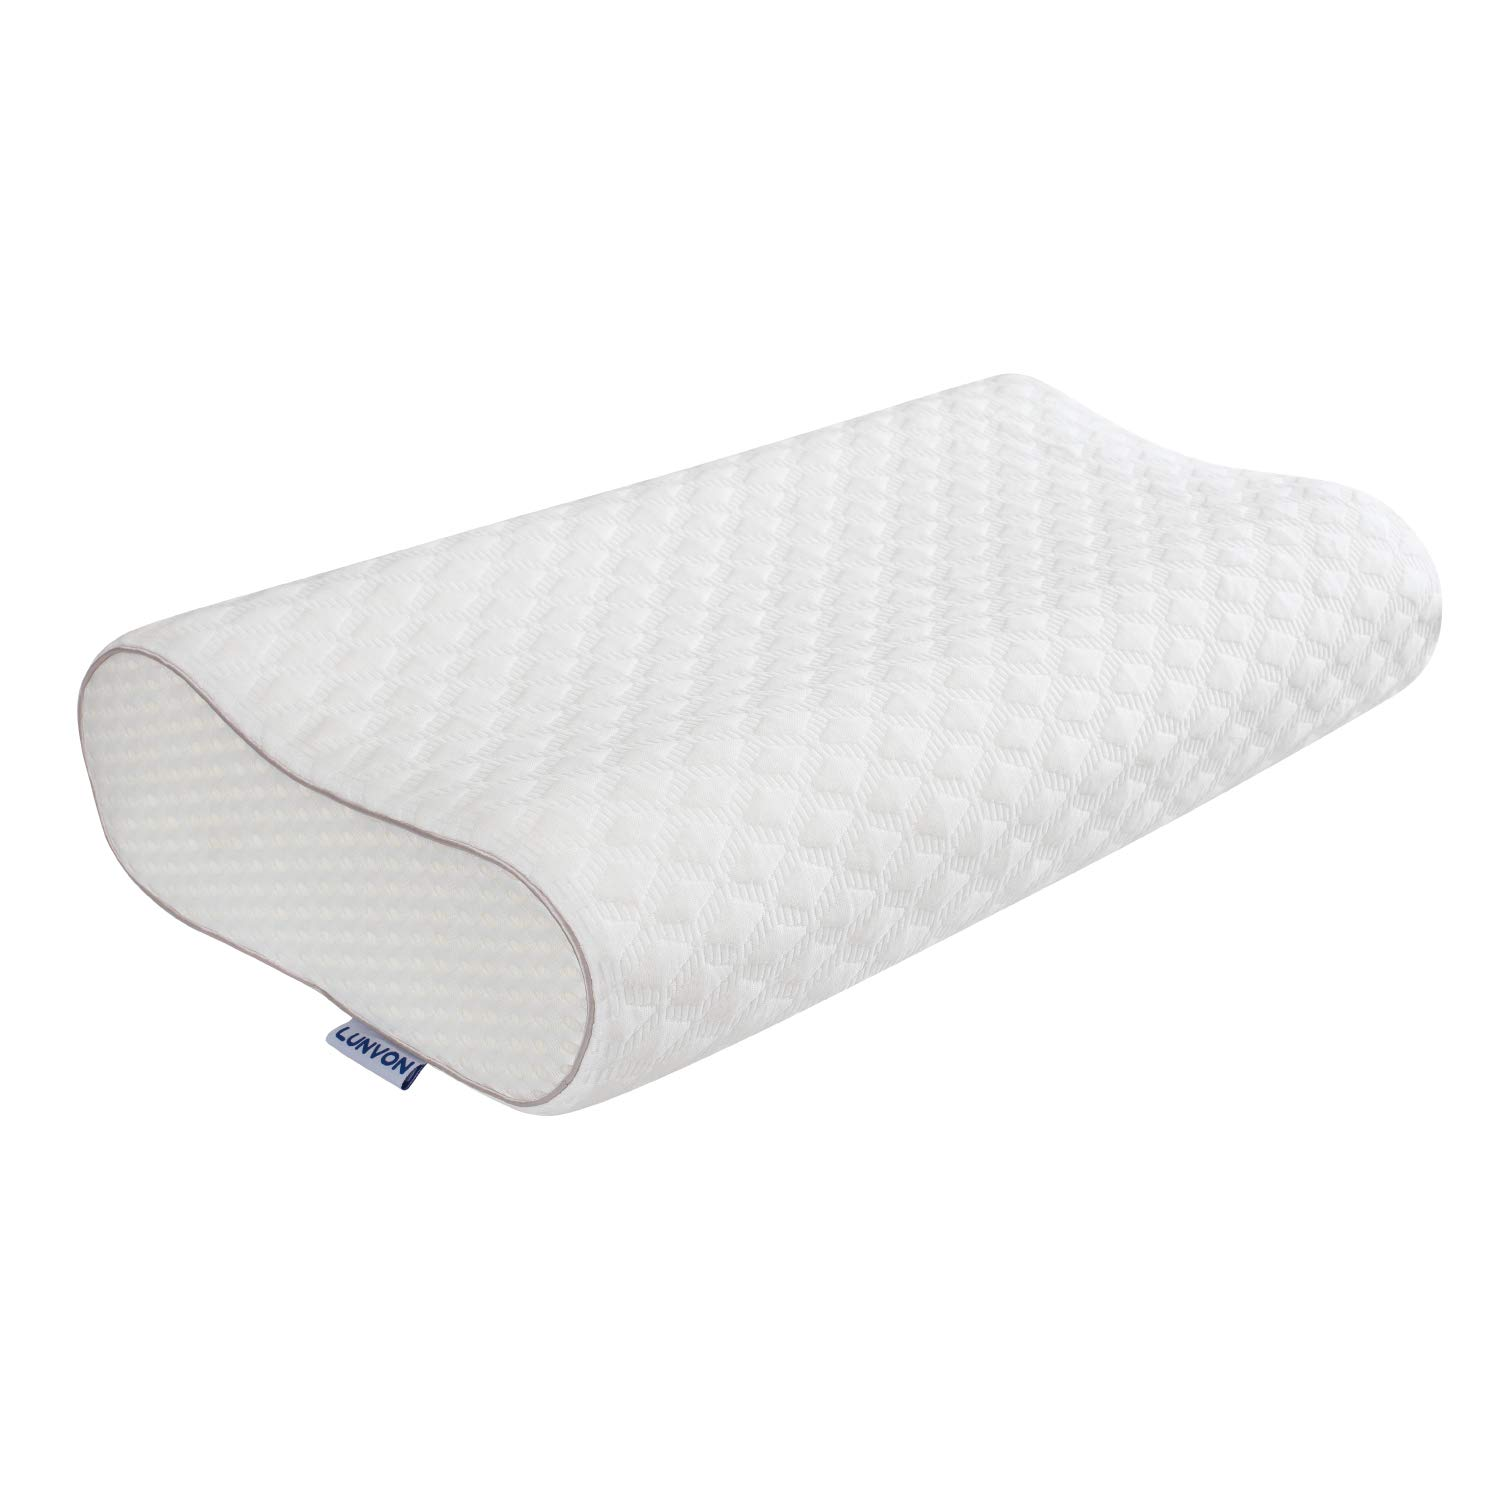 Lunvon Queen Memory Foam Bed Pillow for Sleeping Height Adjustable Cervical Pillow with Pain Relief Design Breathable Cooling Hypoallergenic Cotton Cover Protector CertiPUR-US, White by Lunvon